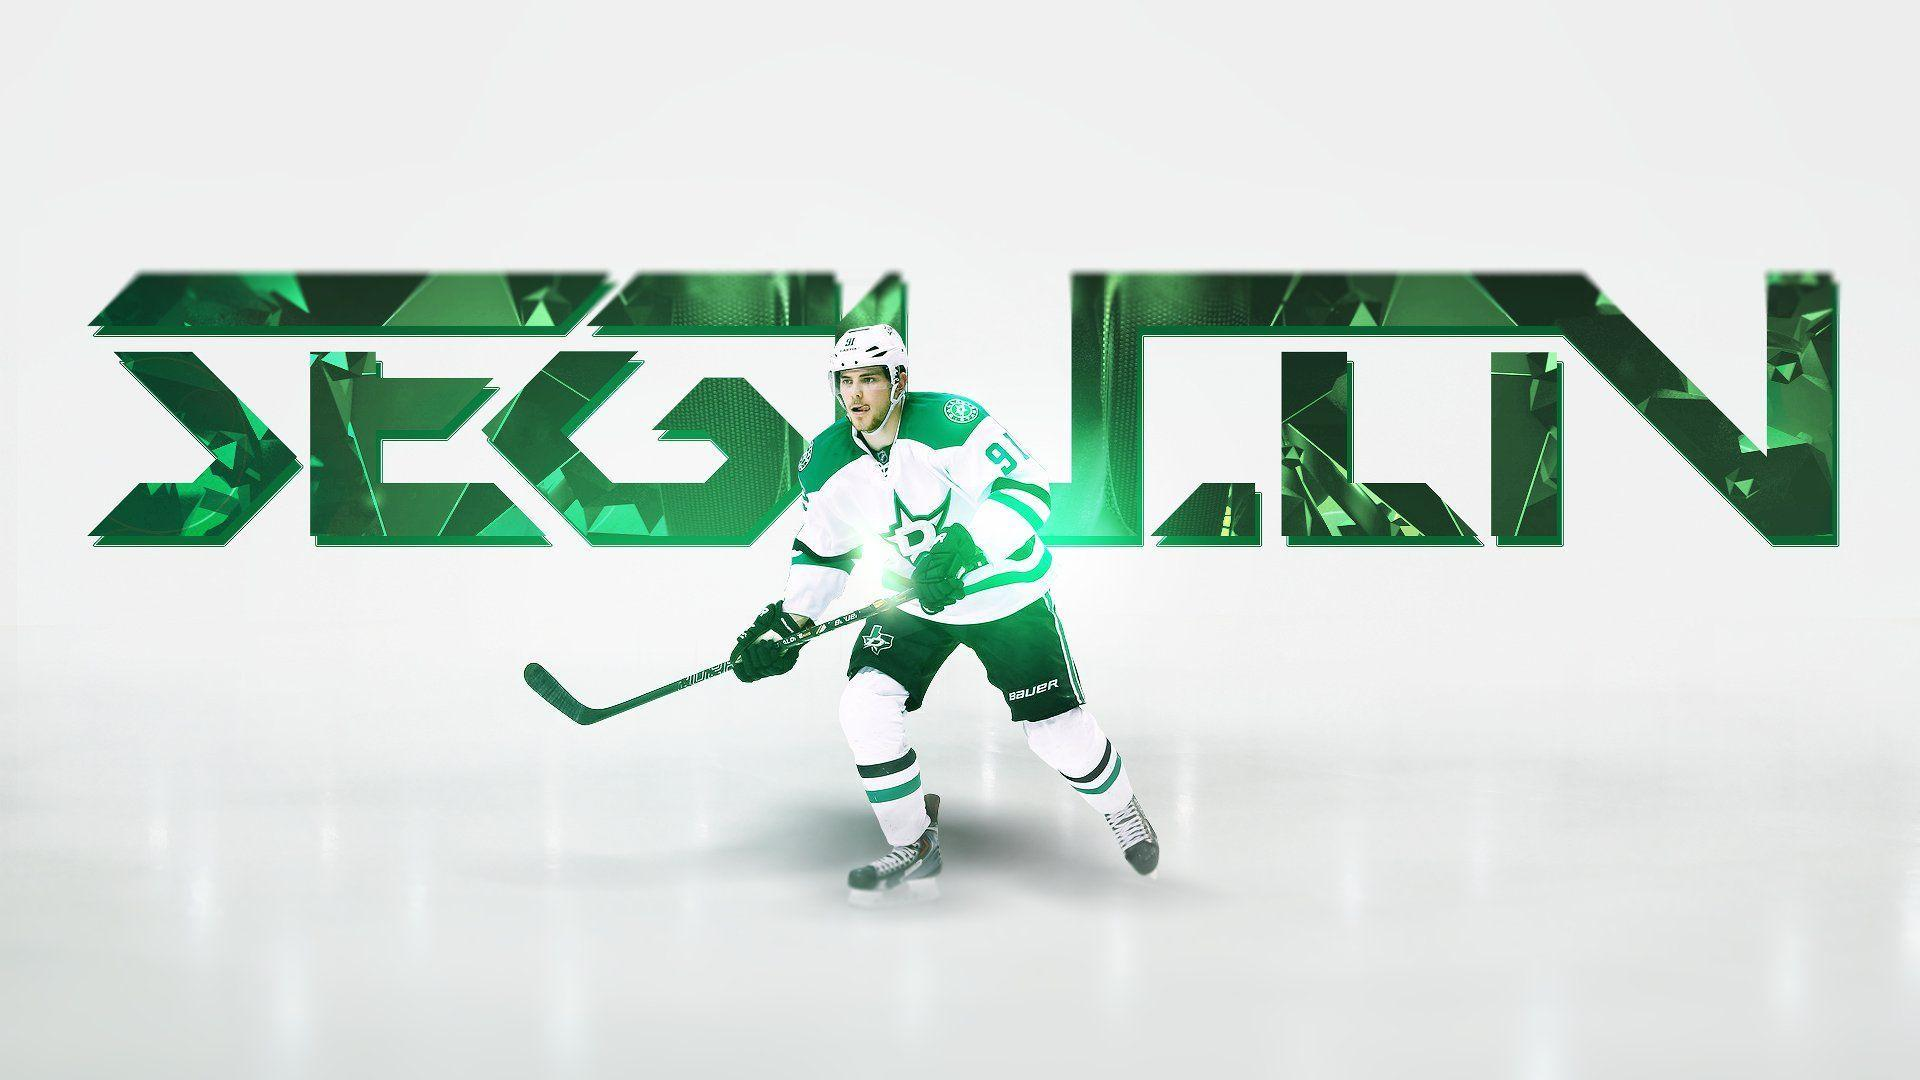 Dallas Stars Wallpapers HD | PixelsTalk.Net